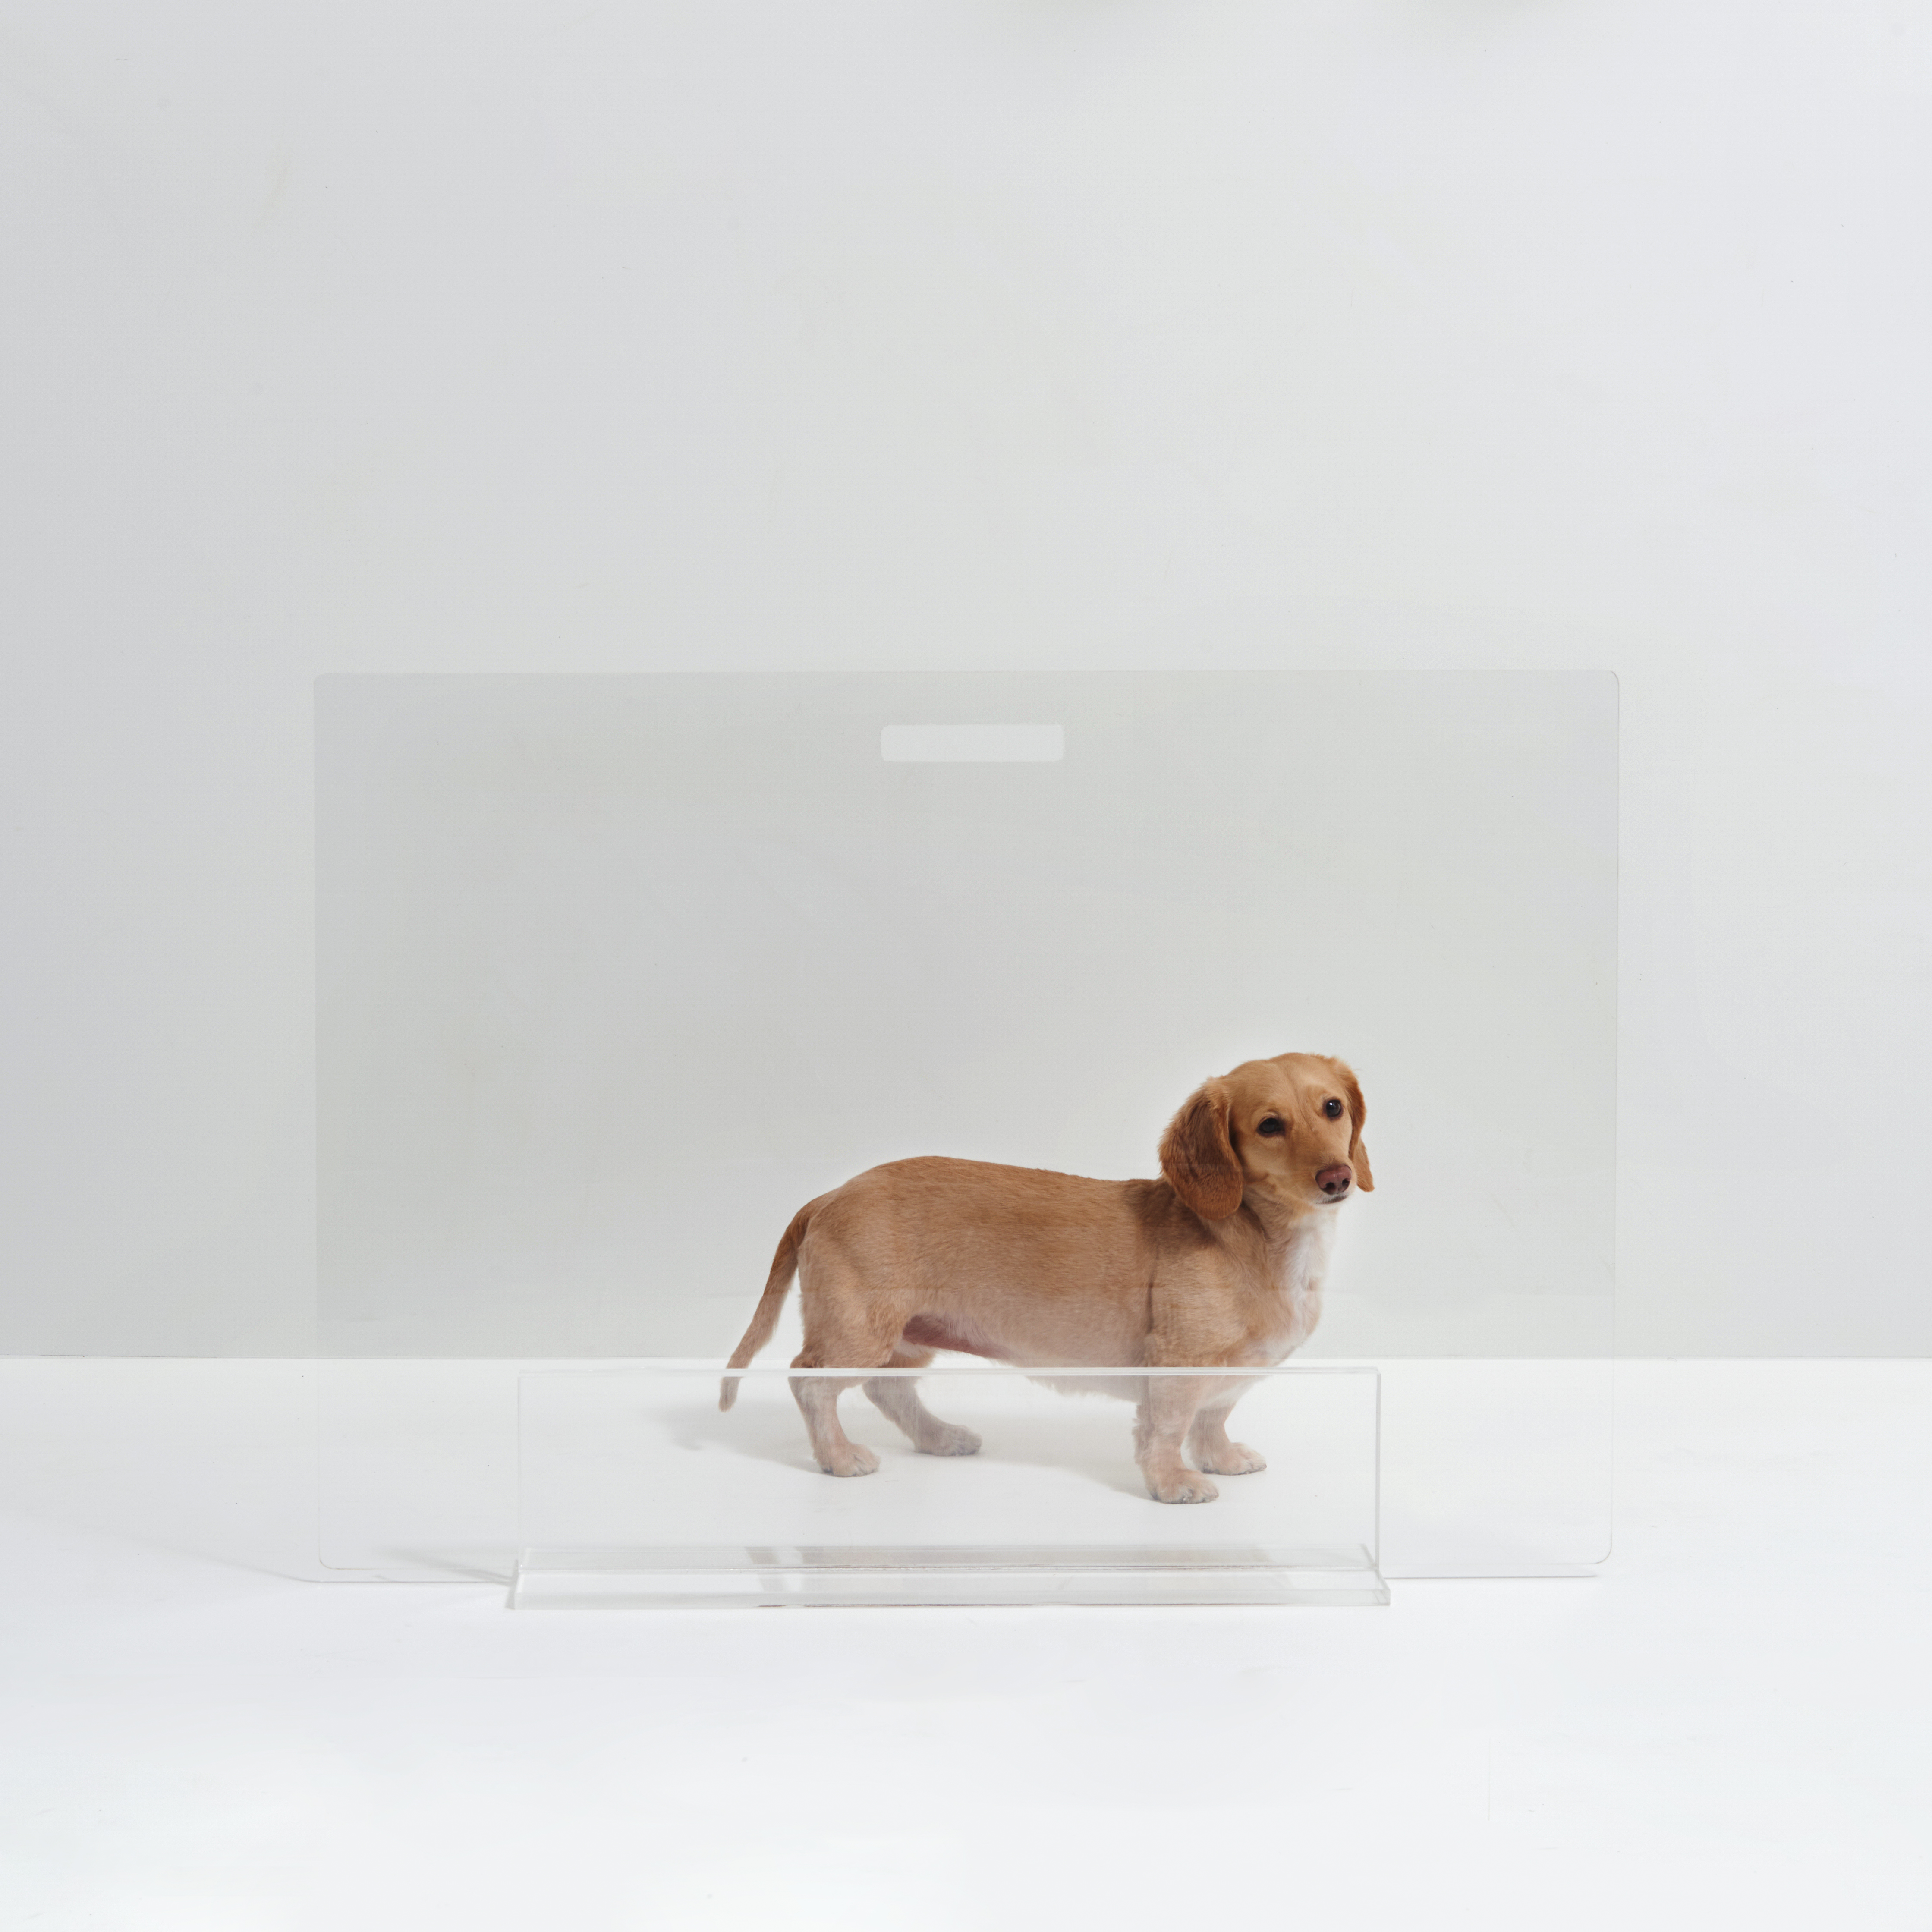 small dog behind clear panel gate